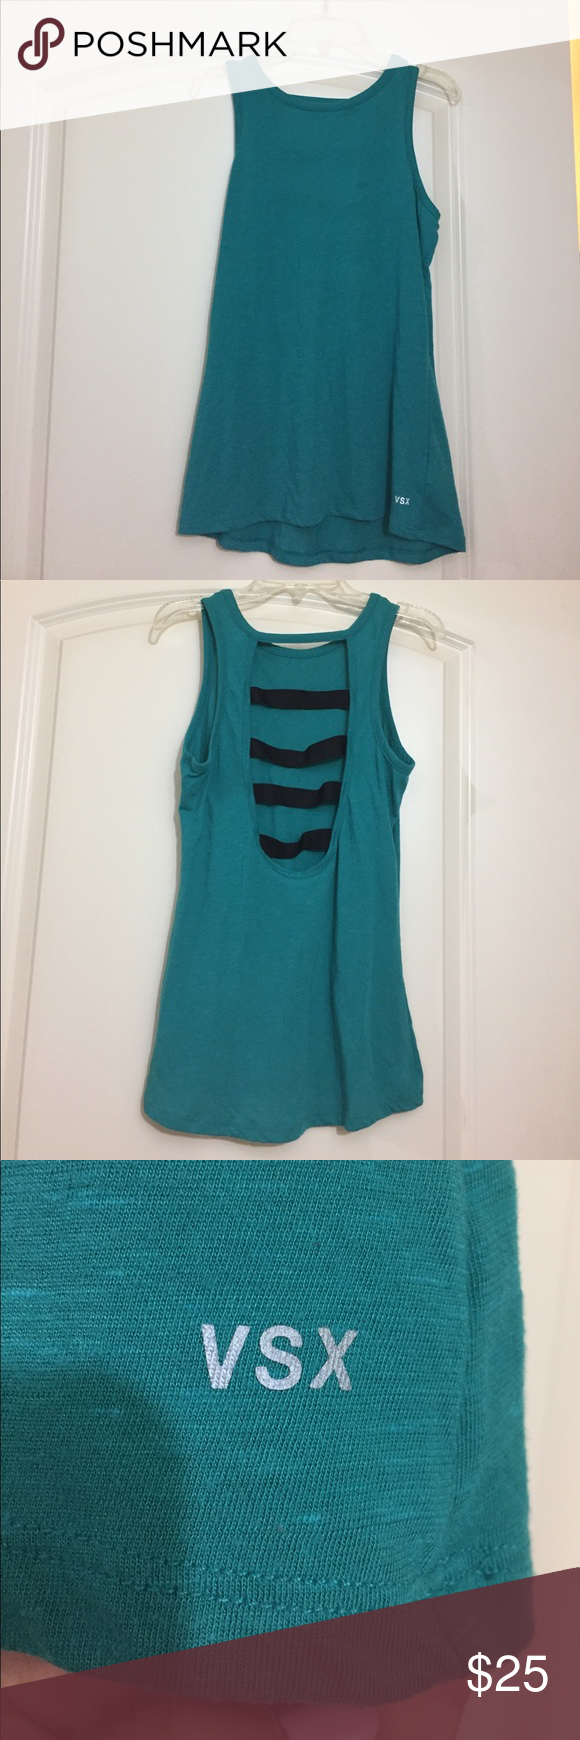 VSX tank Aqua/green VSX tank with black straps on back. Worn once! Victoria's Secret Tops Tank Tops